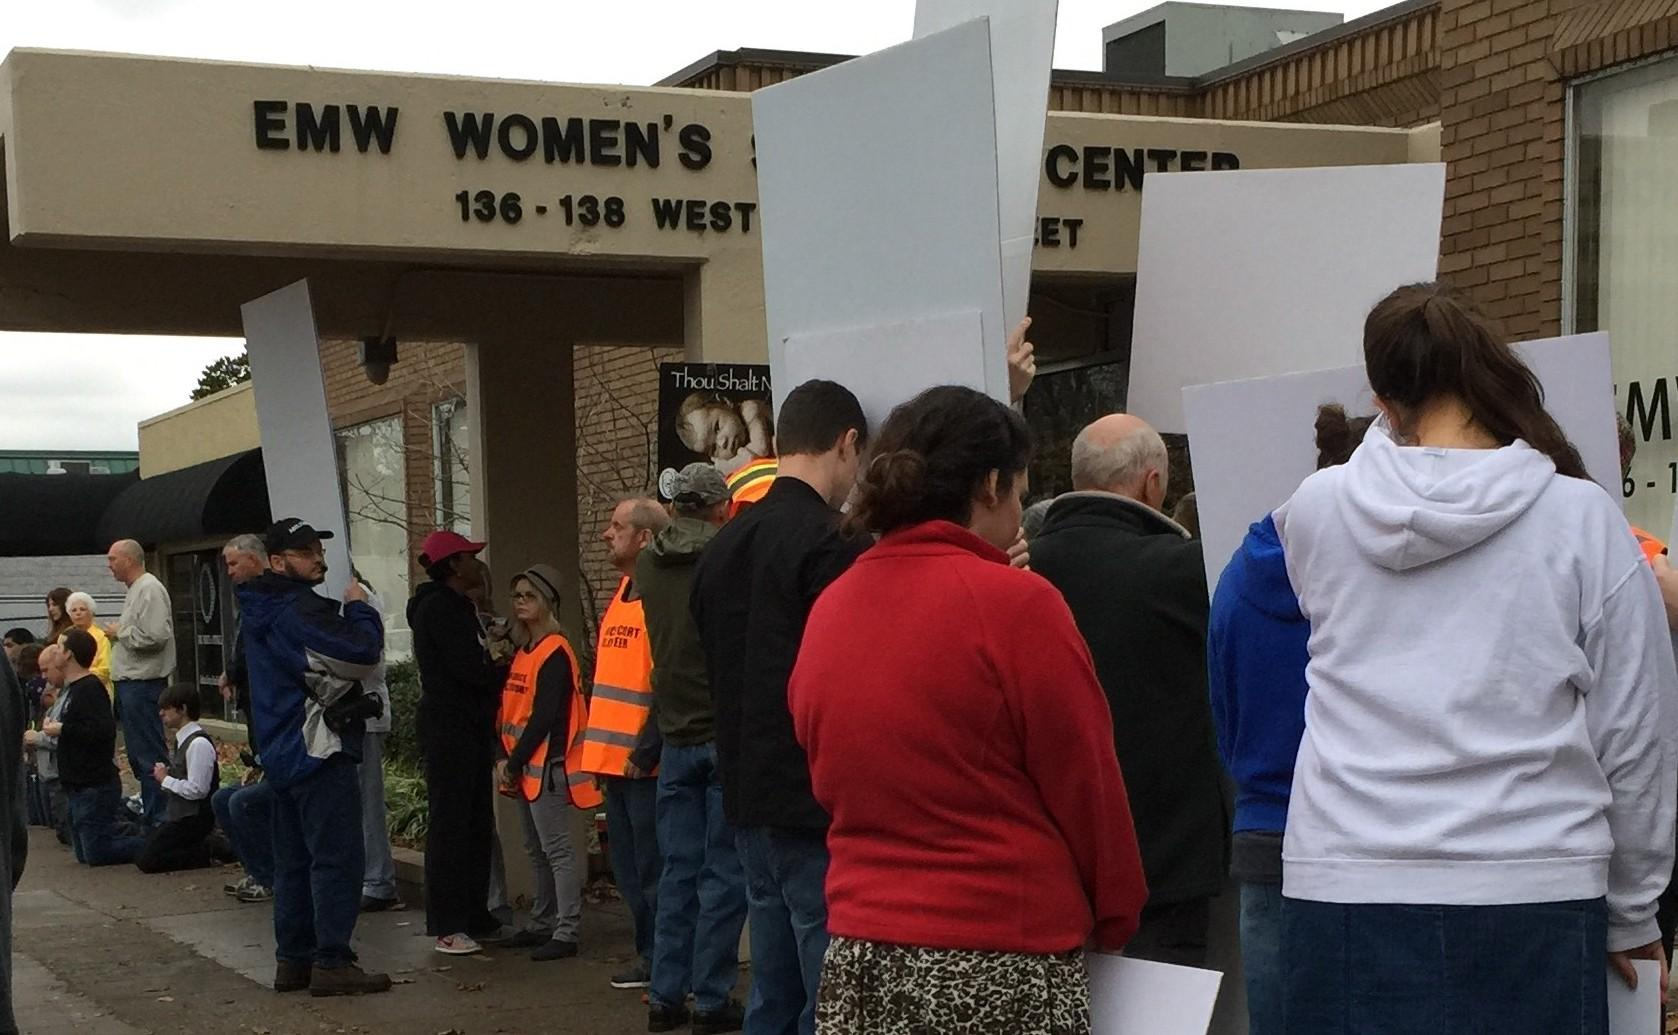 Kentucky's last abortion provider is being threatened with closure